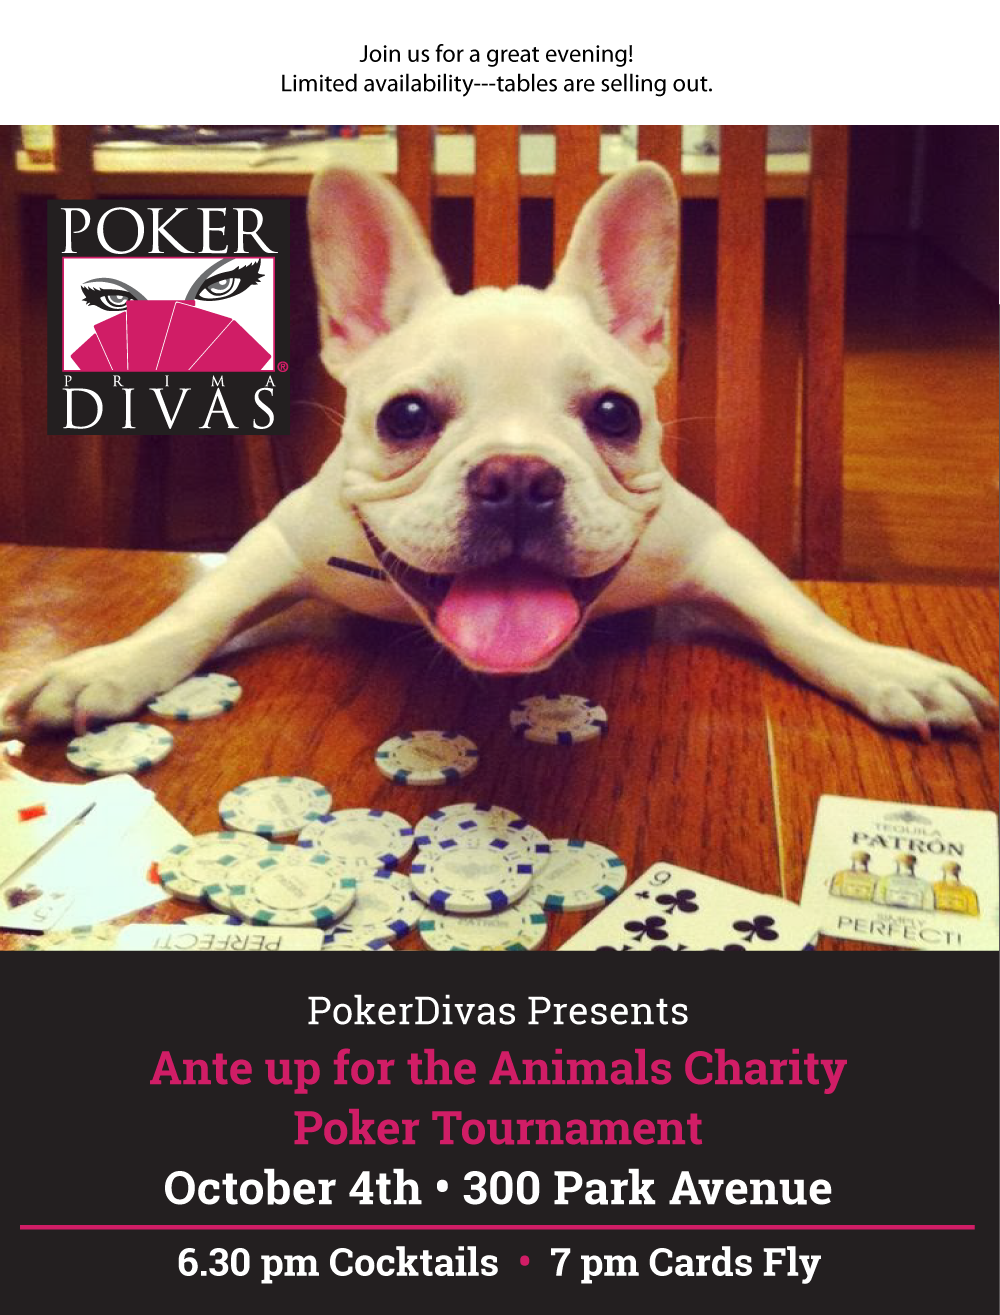 Ante up for the Animals Charity Poker Tournament